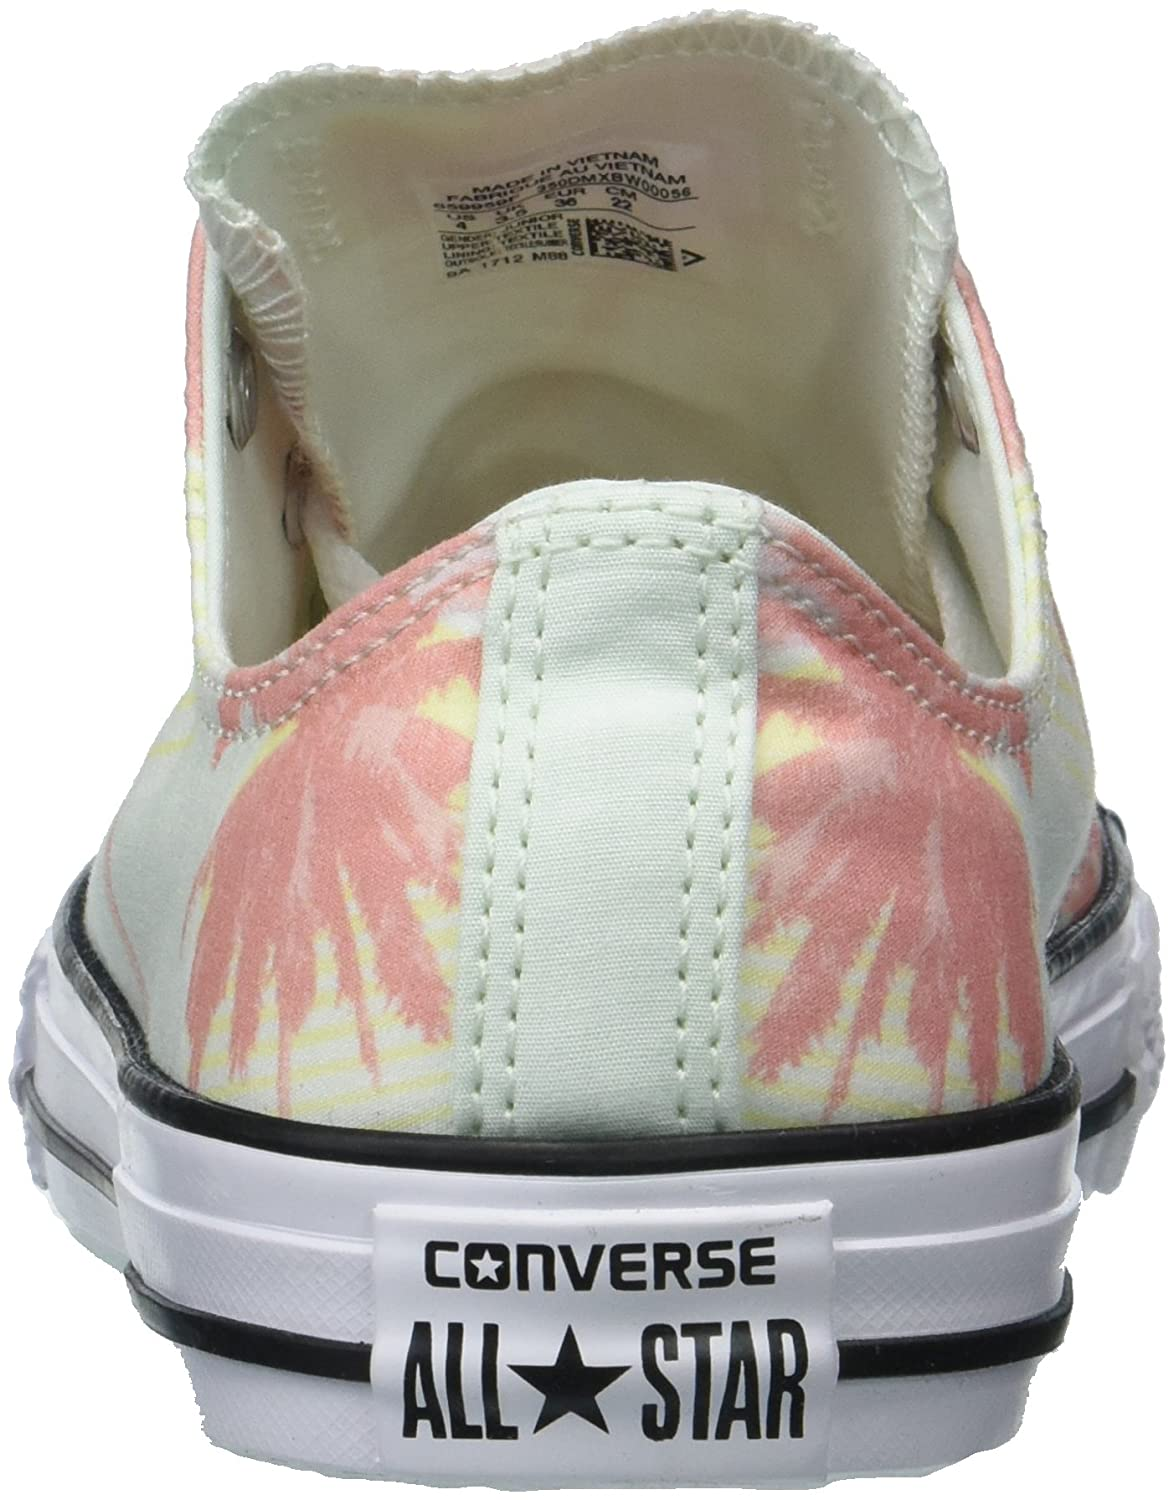 671143ad2991 Amazon.com   Converse Kids' Chuck Taylor All Star Palm Trees Low Top Sneaker    Sneakers